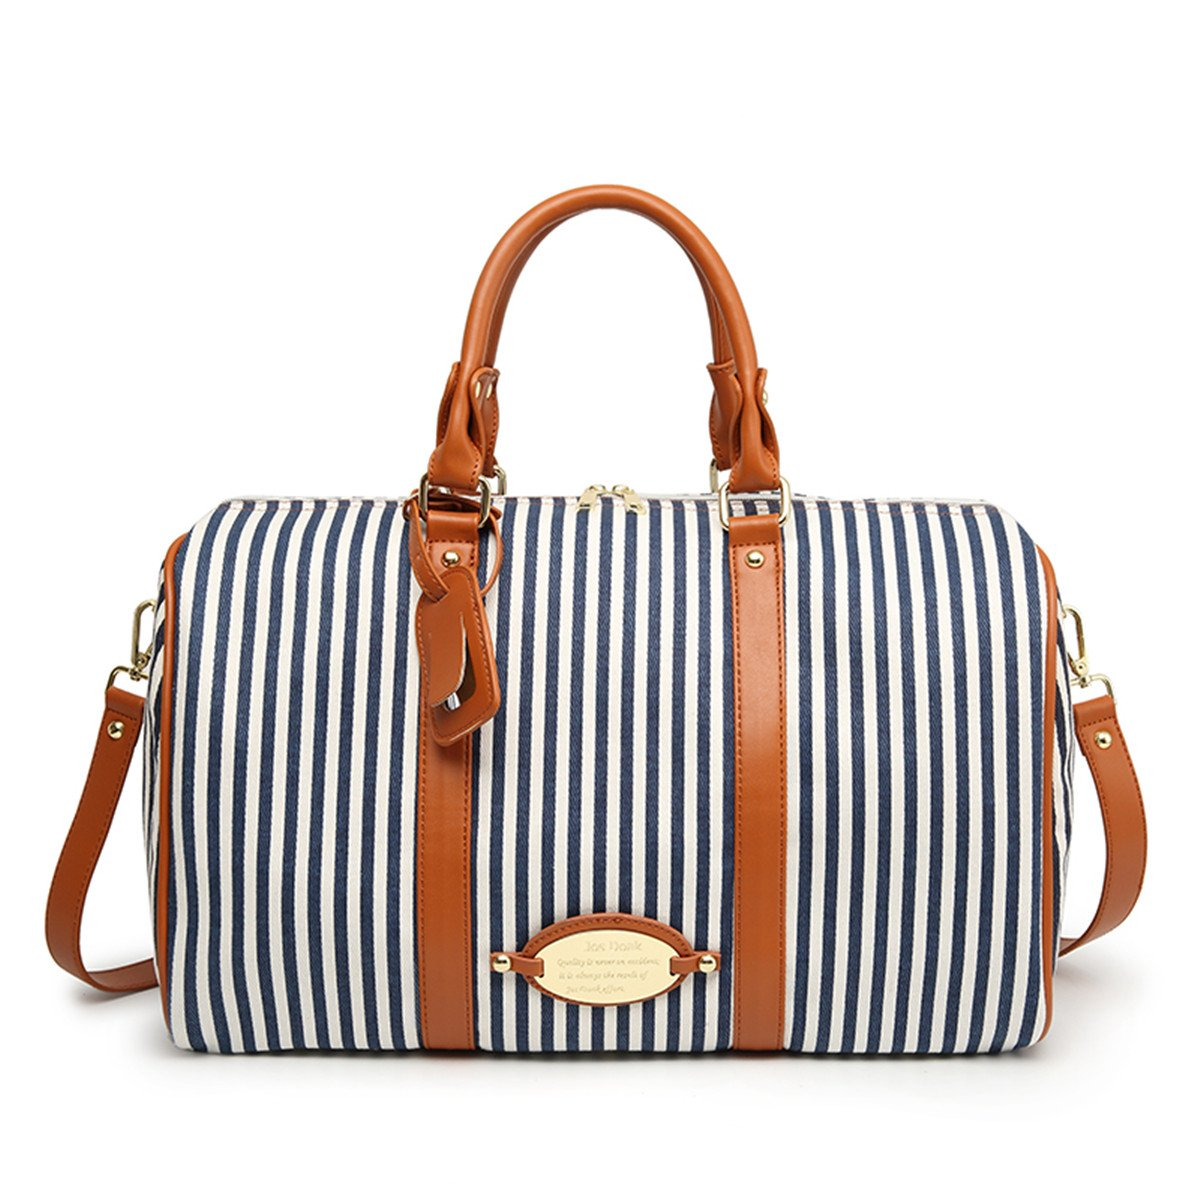 MooYang Women Fashionable Weekender Travel Duffle Tote Bag. Canvas Striped Bag for Overnight Trip,Work,College,Gym,Vacations. by MooYang (Image #1)